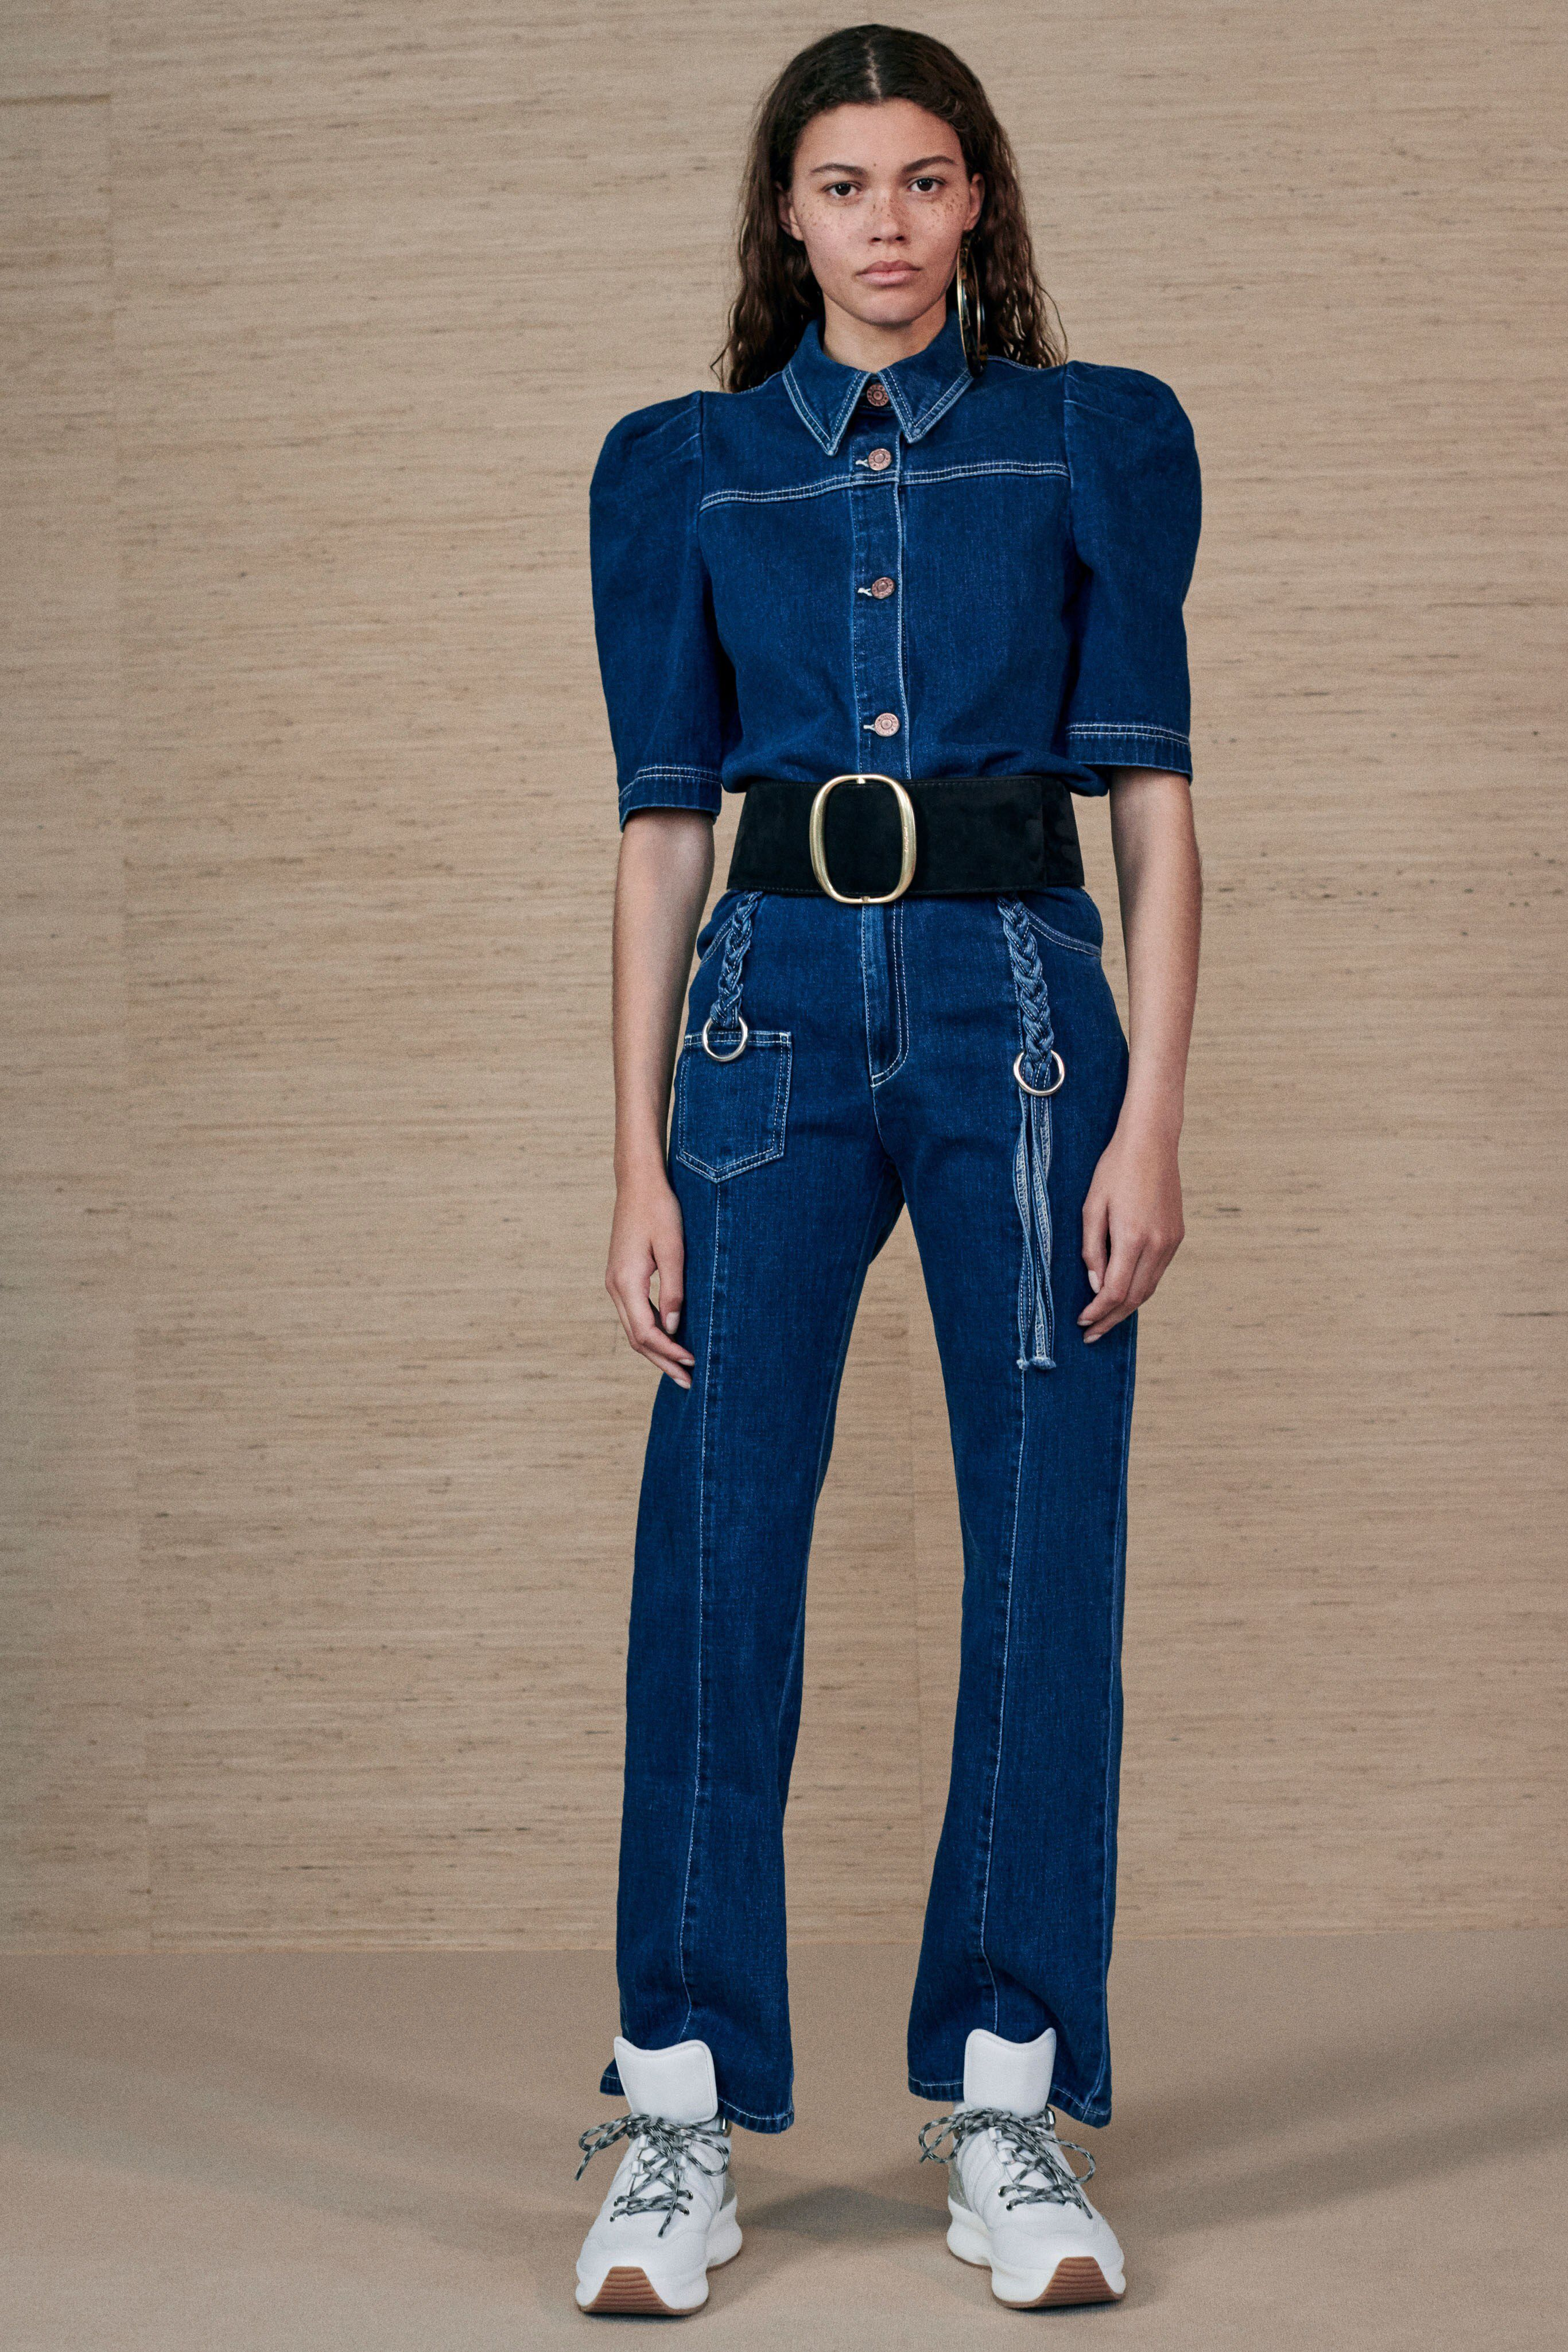 aa74e793dfae See the complete See by Chloé Resort 2019 collection. Denim Jumpsuit